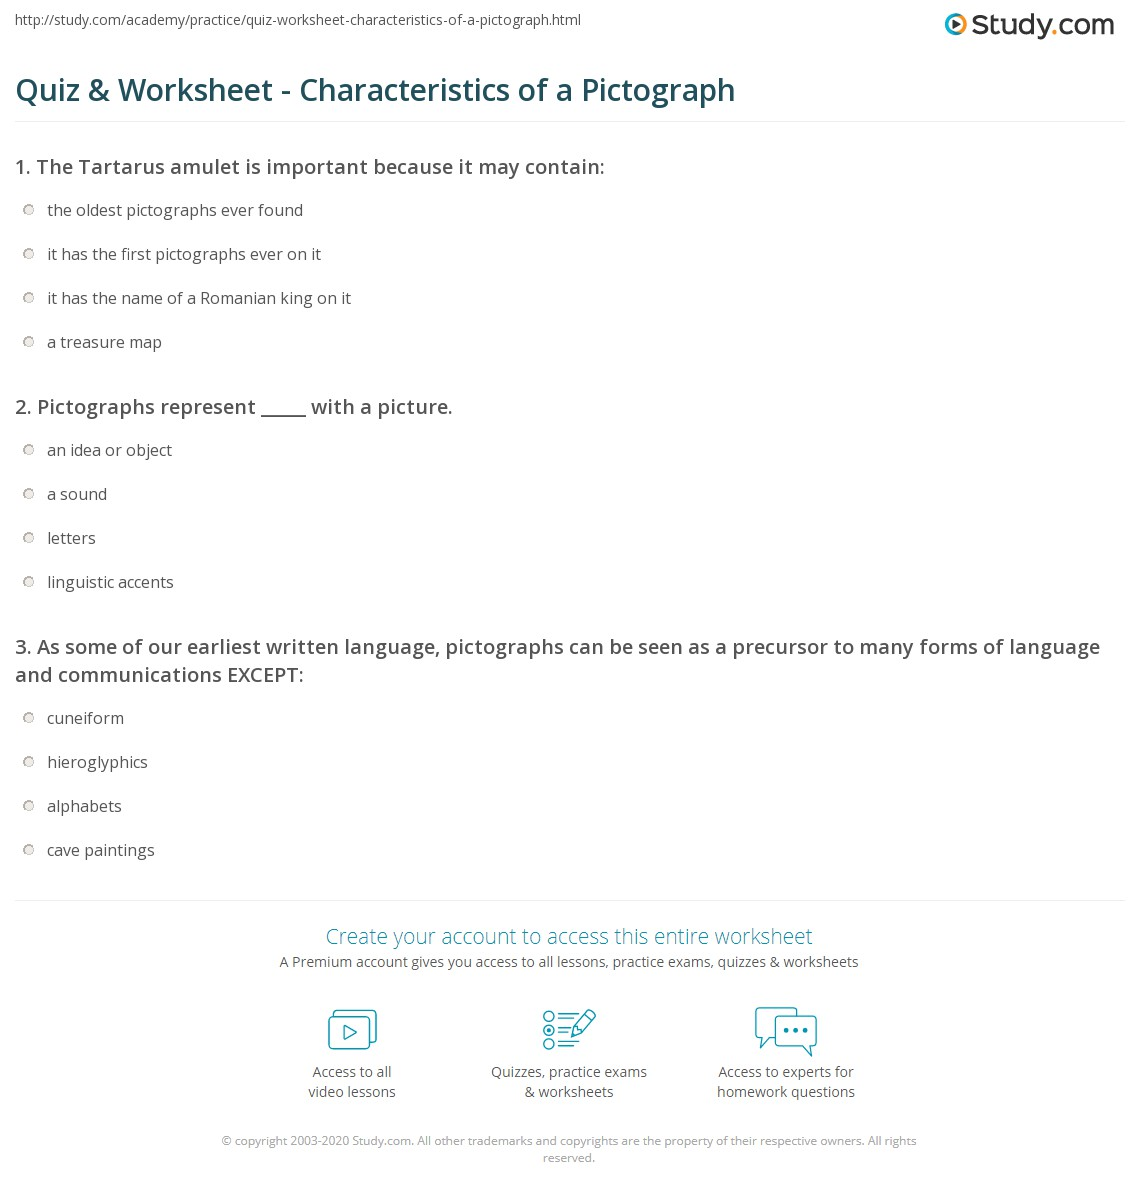 Worksheets Pictograph Worksheets quiz worksheet characteristics of a pictograph study com print definition examples images worksheet